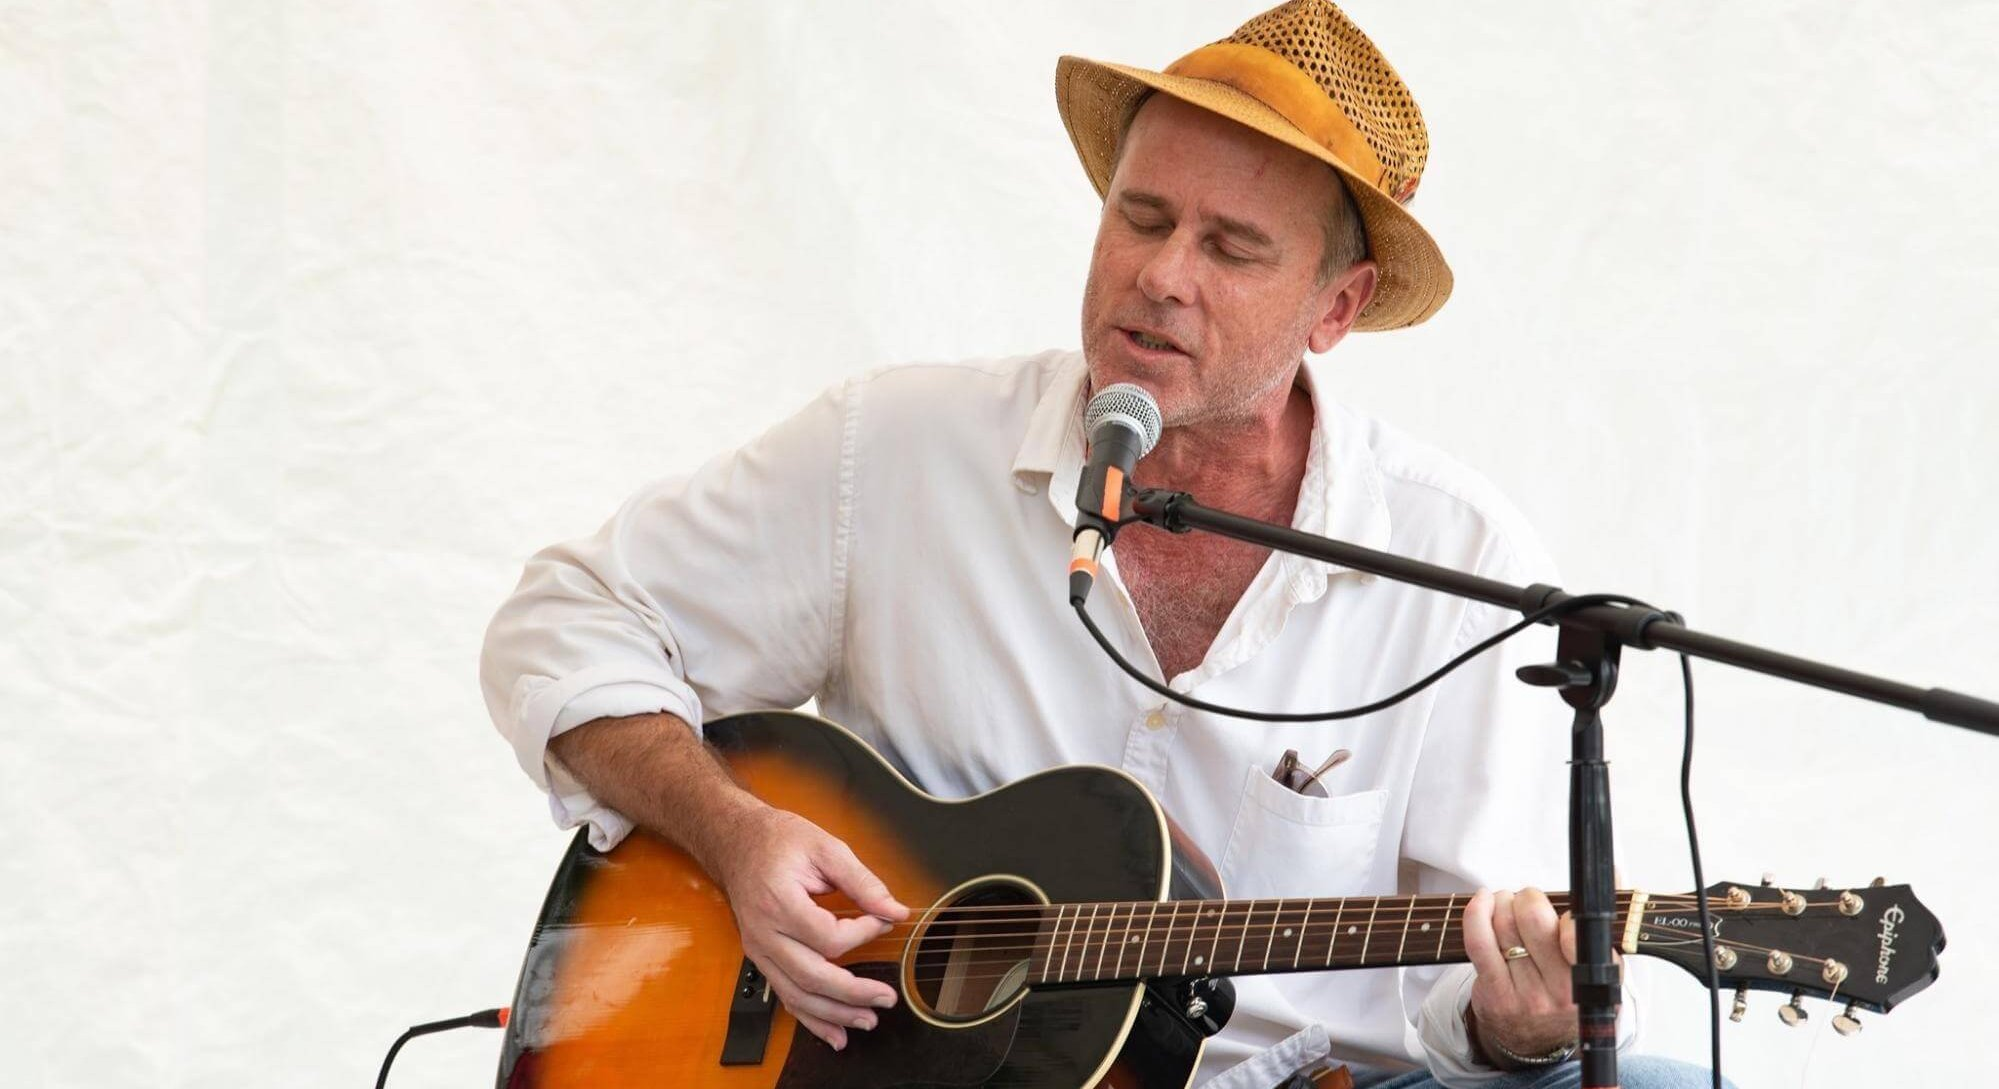 Neil Howard performs at the Woodstock 50-50 Festival, held Aug 17-18 2019 on the back lawn of the Colony in Woodstock